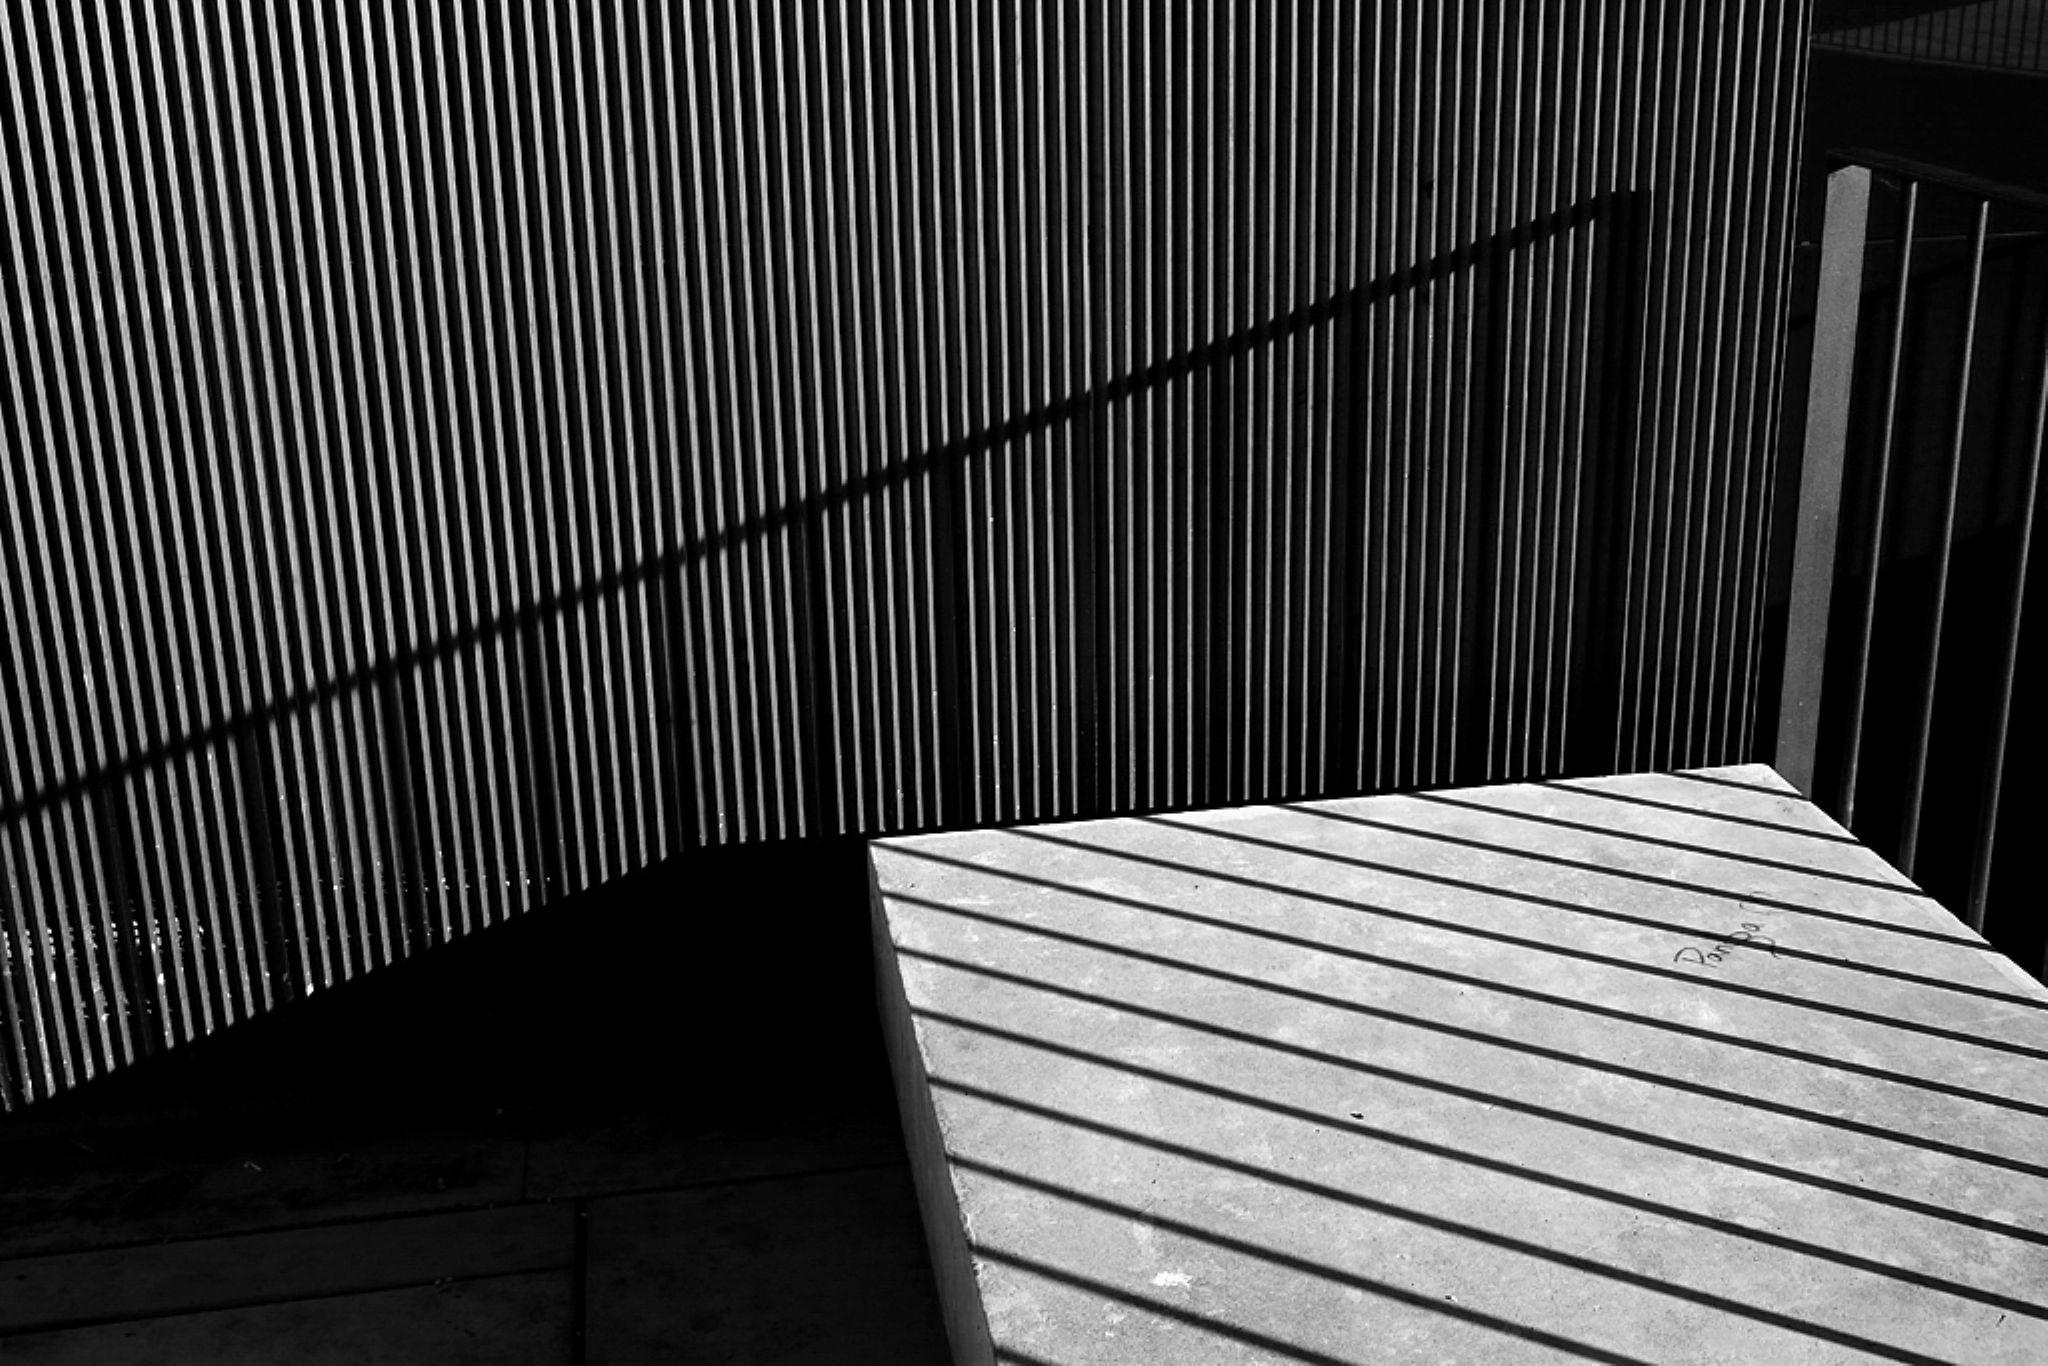 blinded by the lines by Paulo Pinto